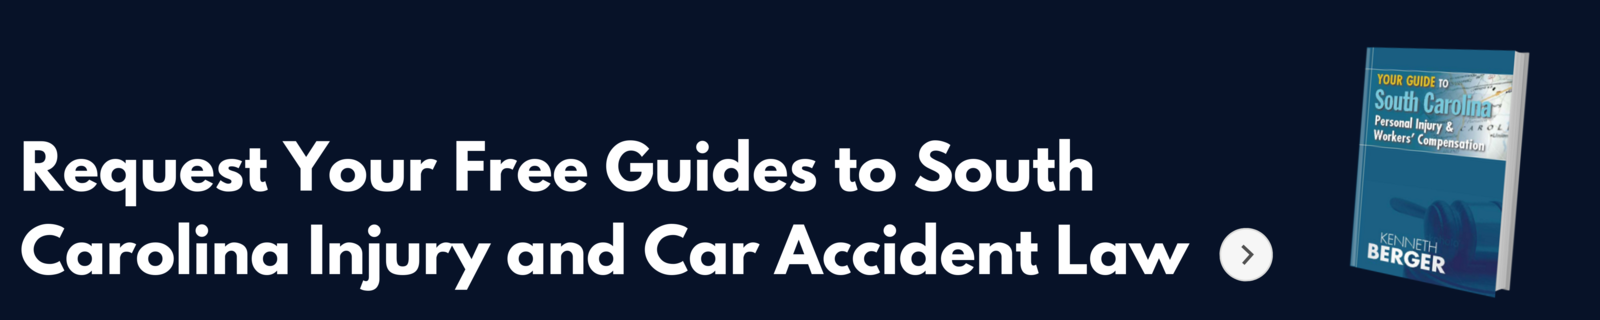 Request free guides to SC personal injury law